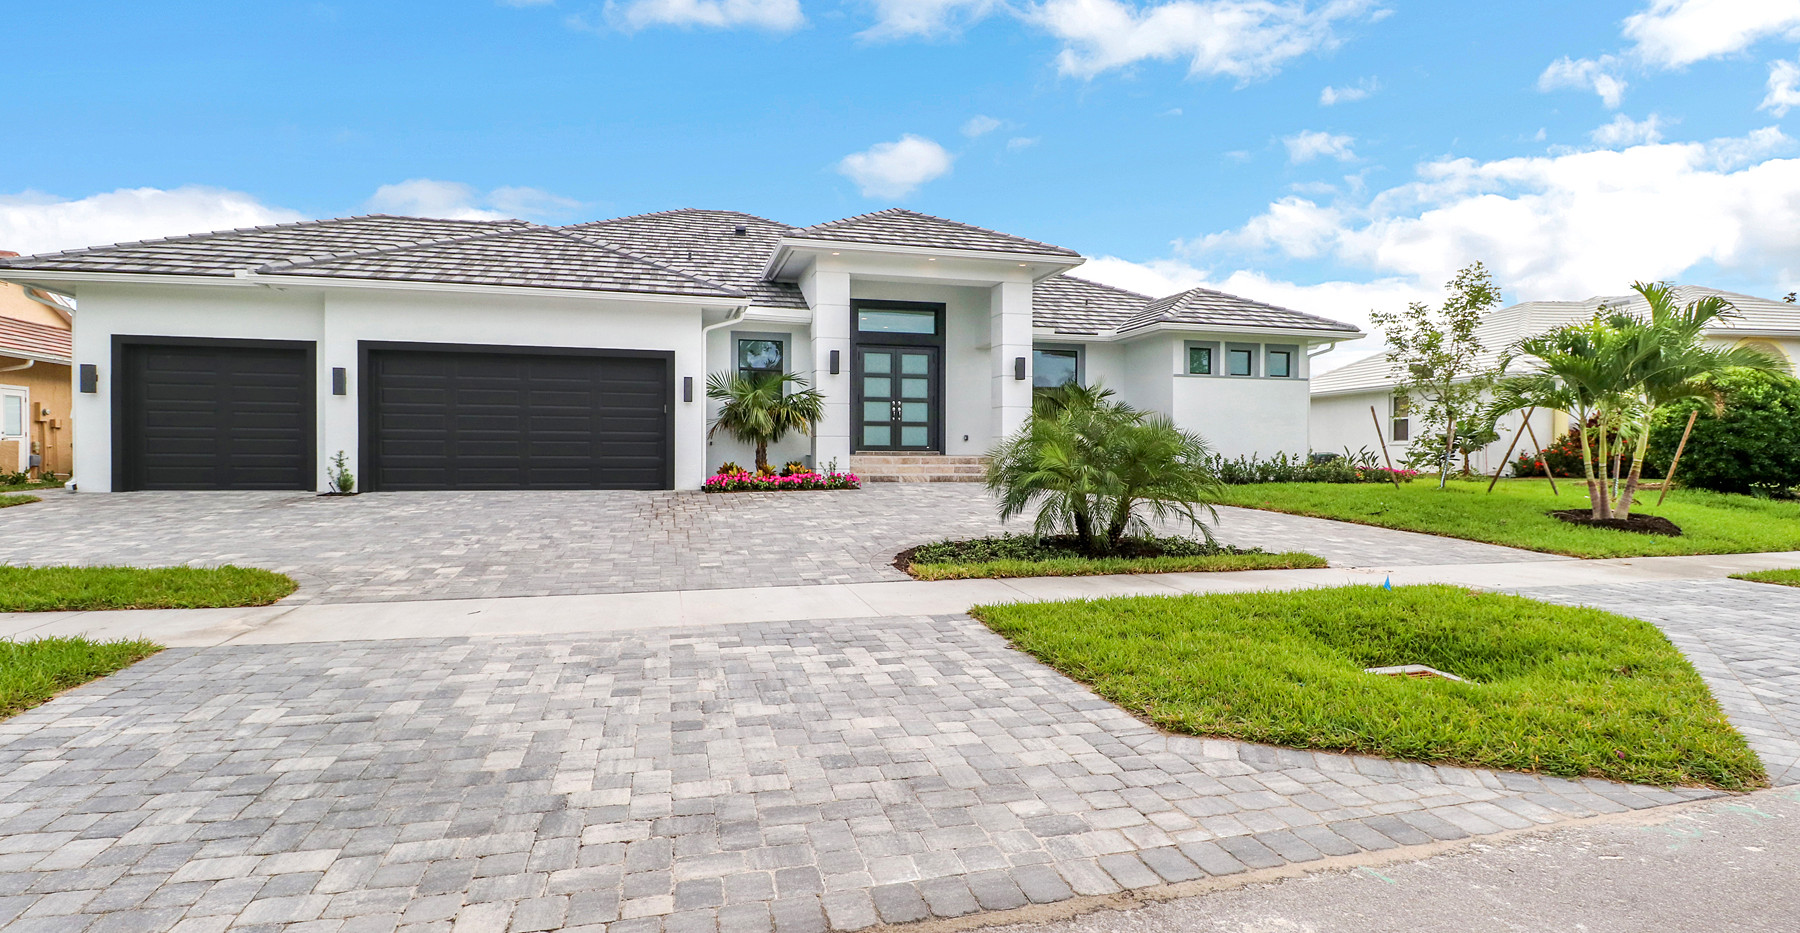 Jamaica Court home in Marco island Exterior